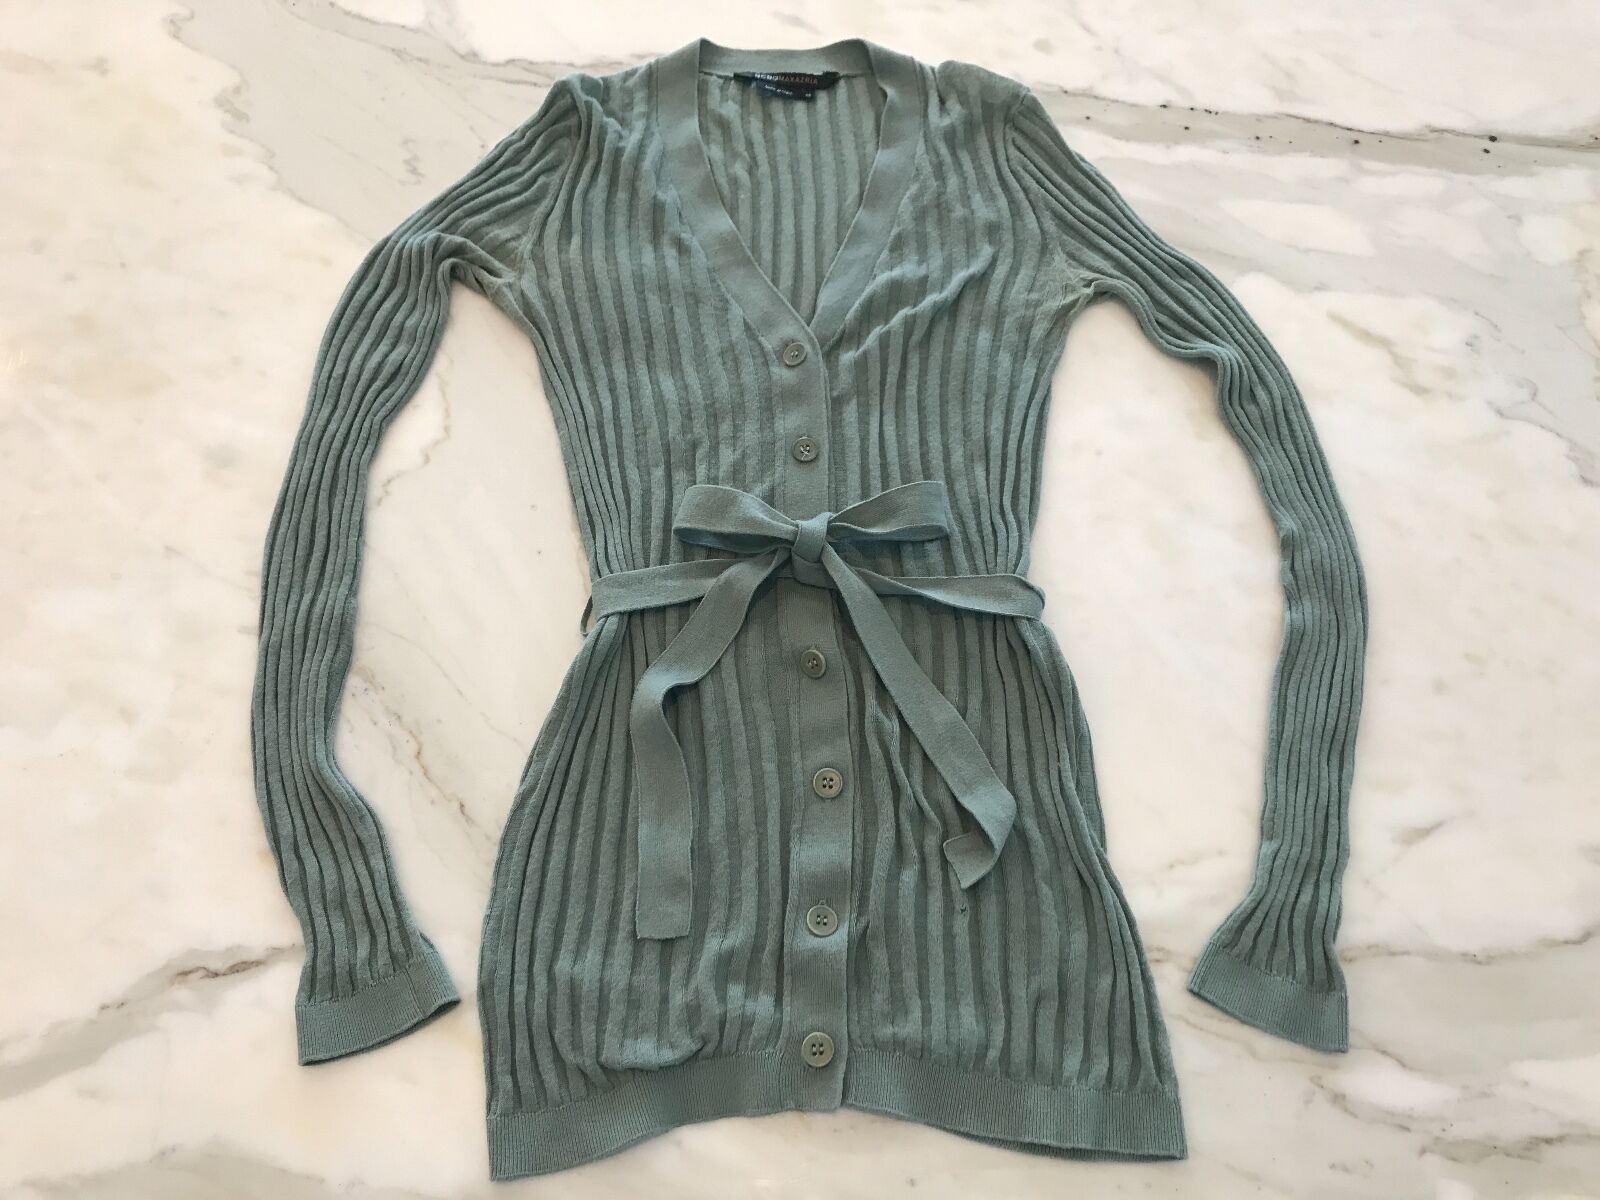 BCBG SAGE GREEN FITTED BELTED LIGHT WEIGHT CARDIGAN SWEATER SIZE X-SMALL